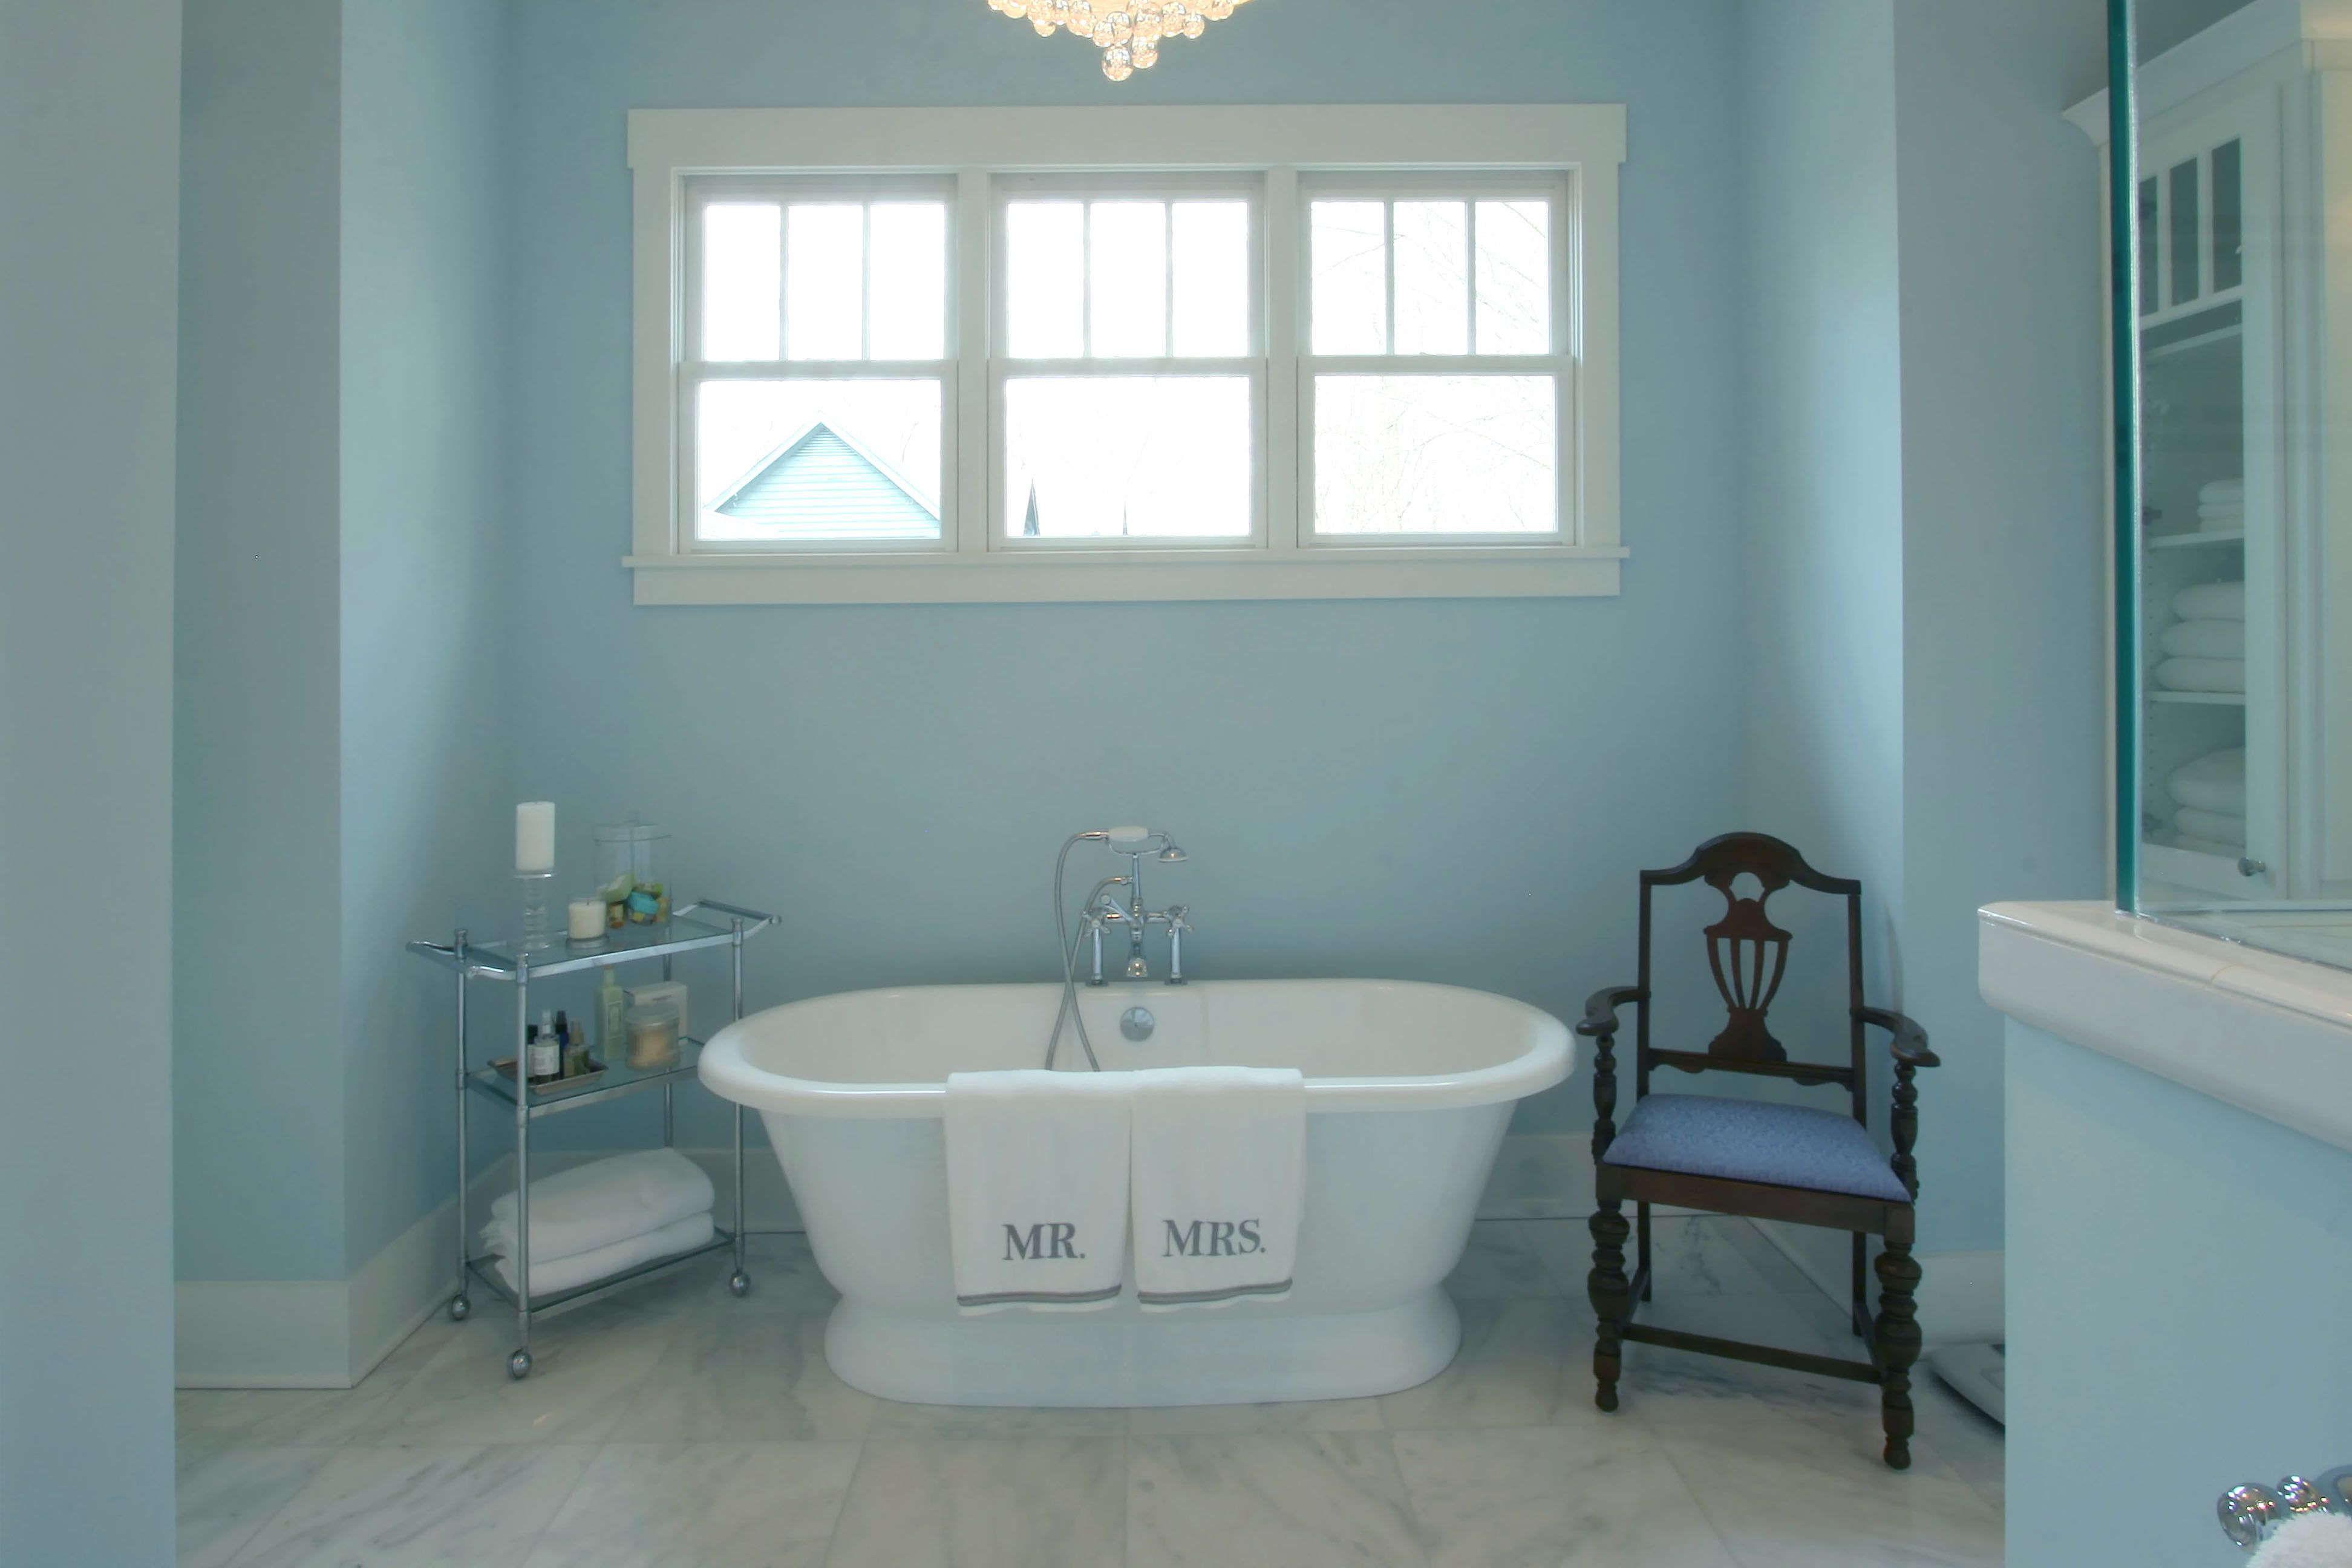 Master Bathroom Low Country Design Pinterest Interiors Inside Ideas Interiors design about Everything [magnanprojects.com]